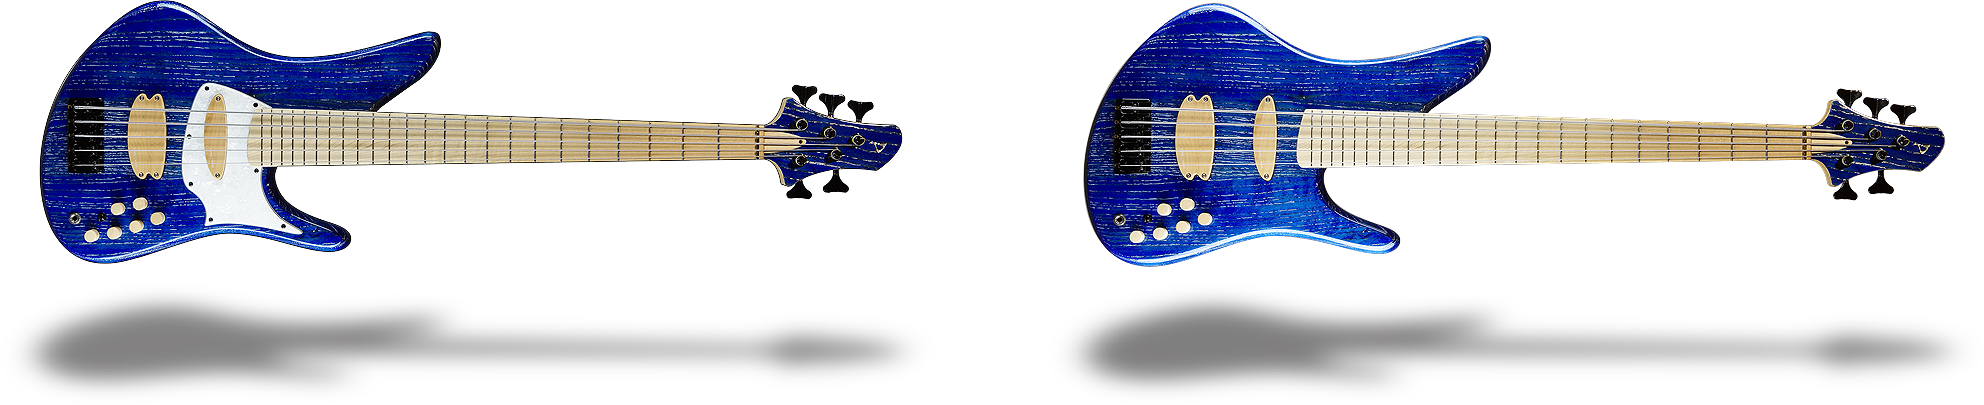 Prelude bass guitar with and without pickguard